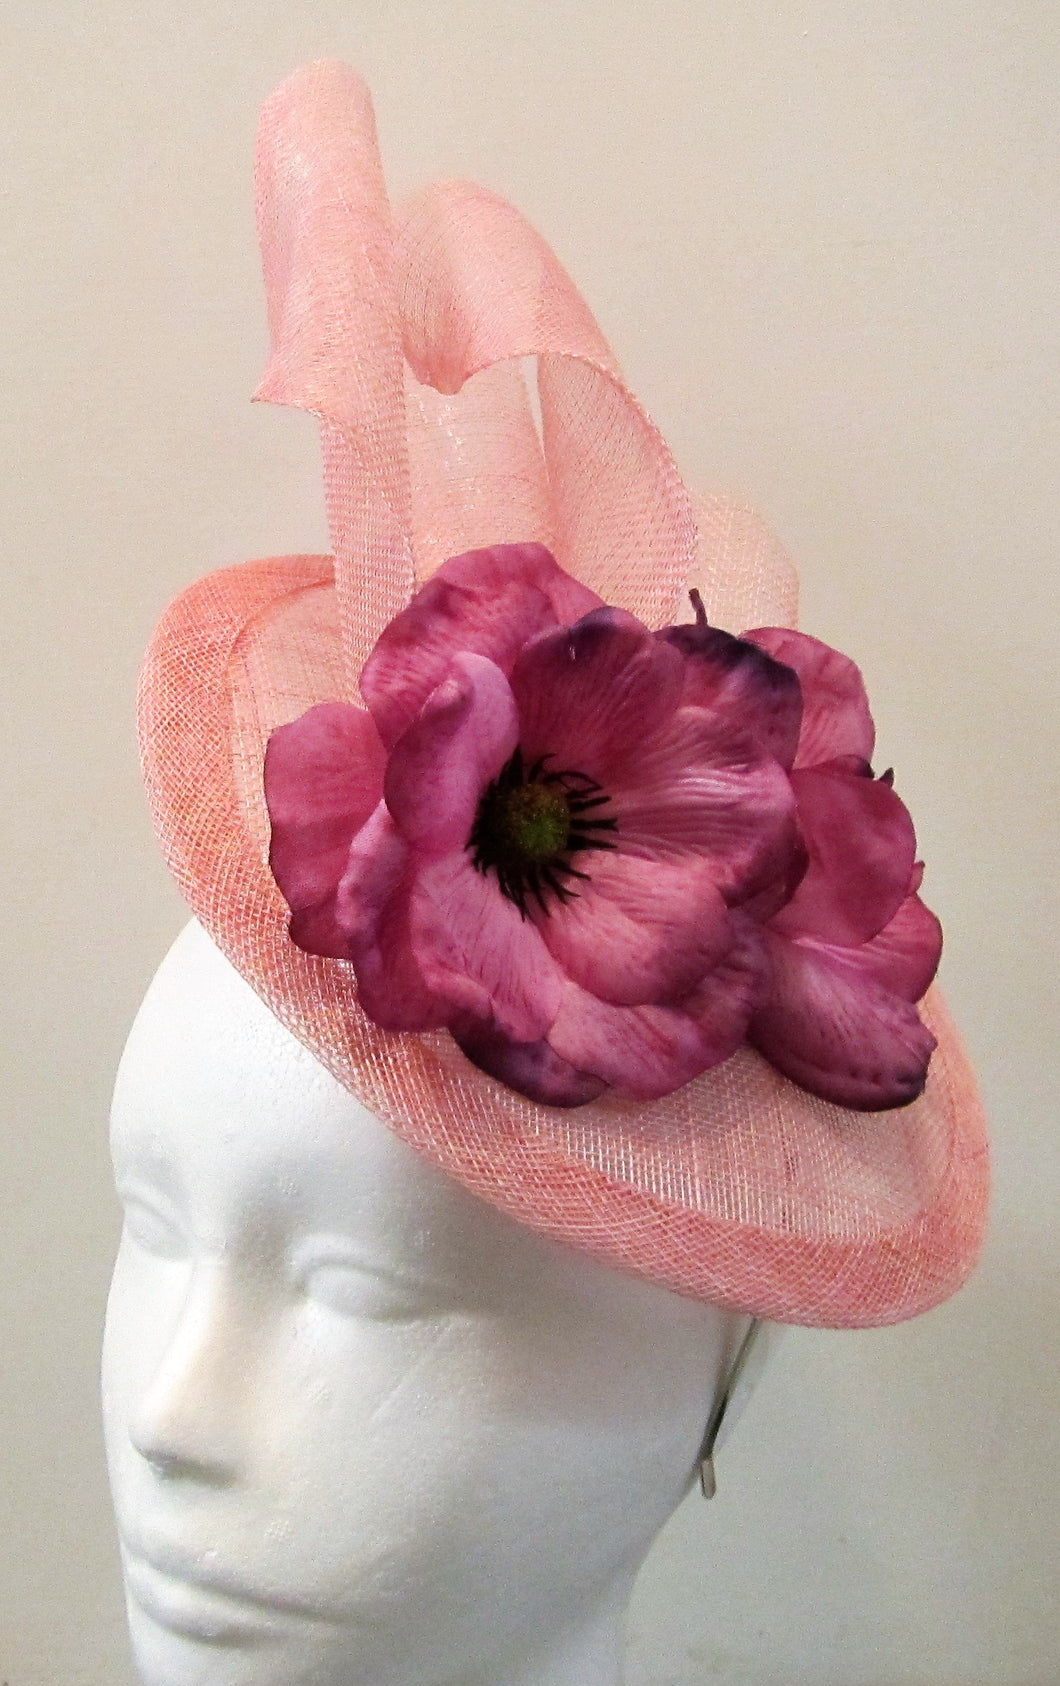 Handcrafted light pink disk with waves and purple flowers fascinator on a hair band